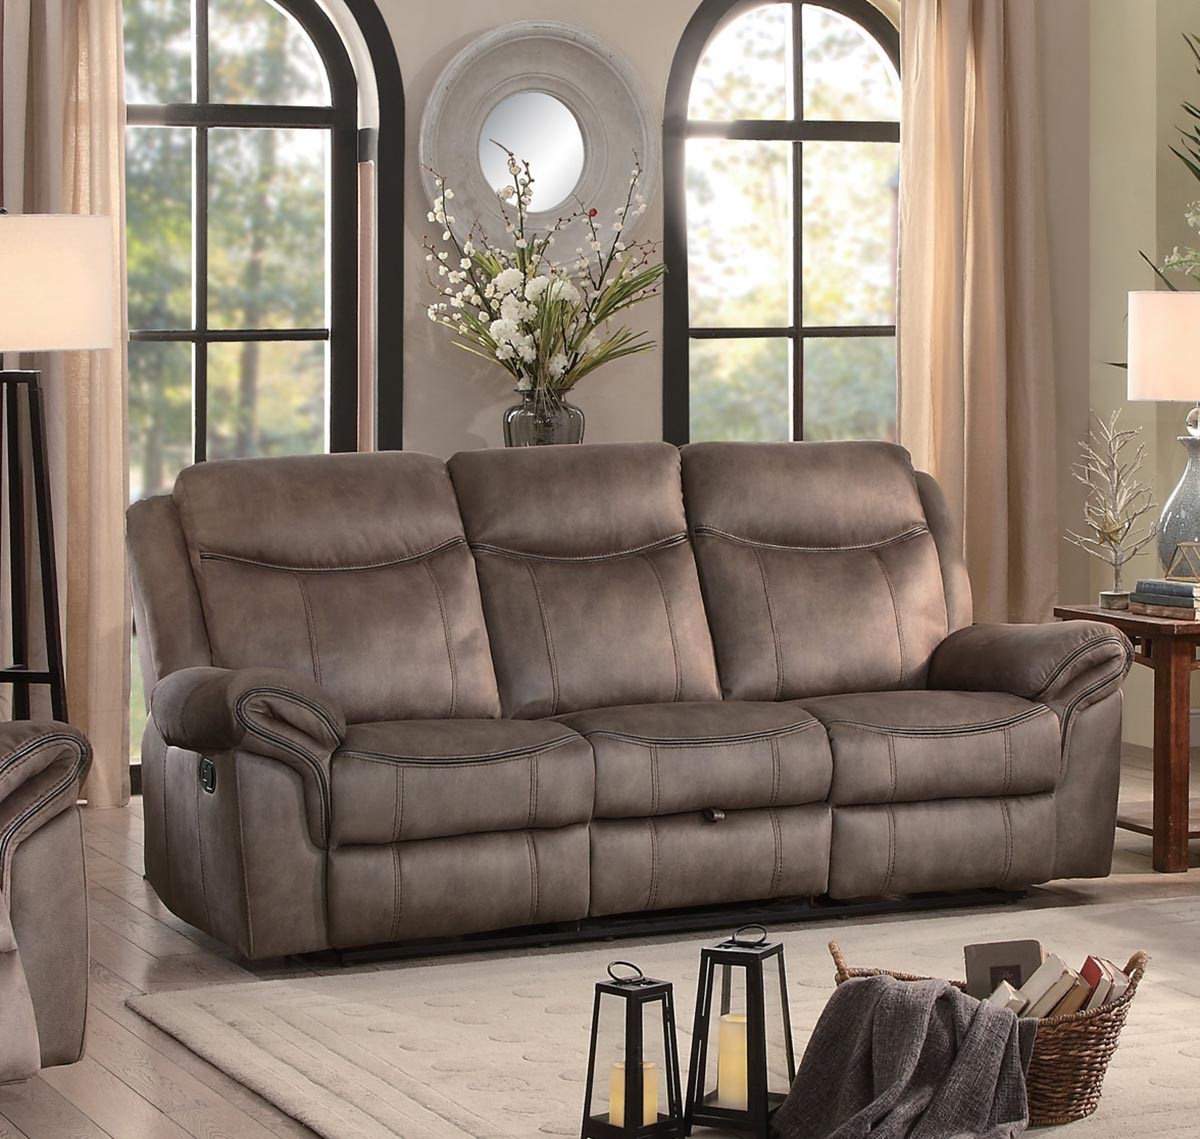 Homelegance Aram Double Reclining Sofa with Drop-Down Table and Center Storage Drawer - Brown Fabric